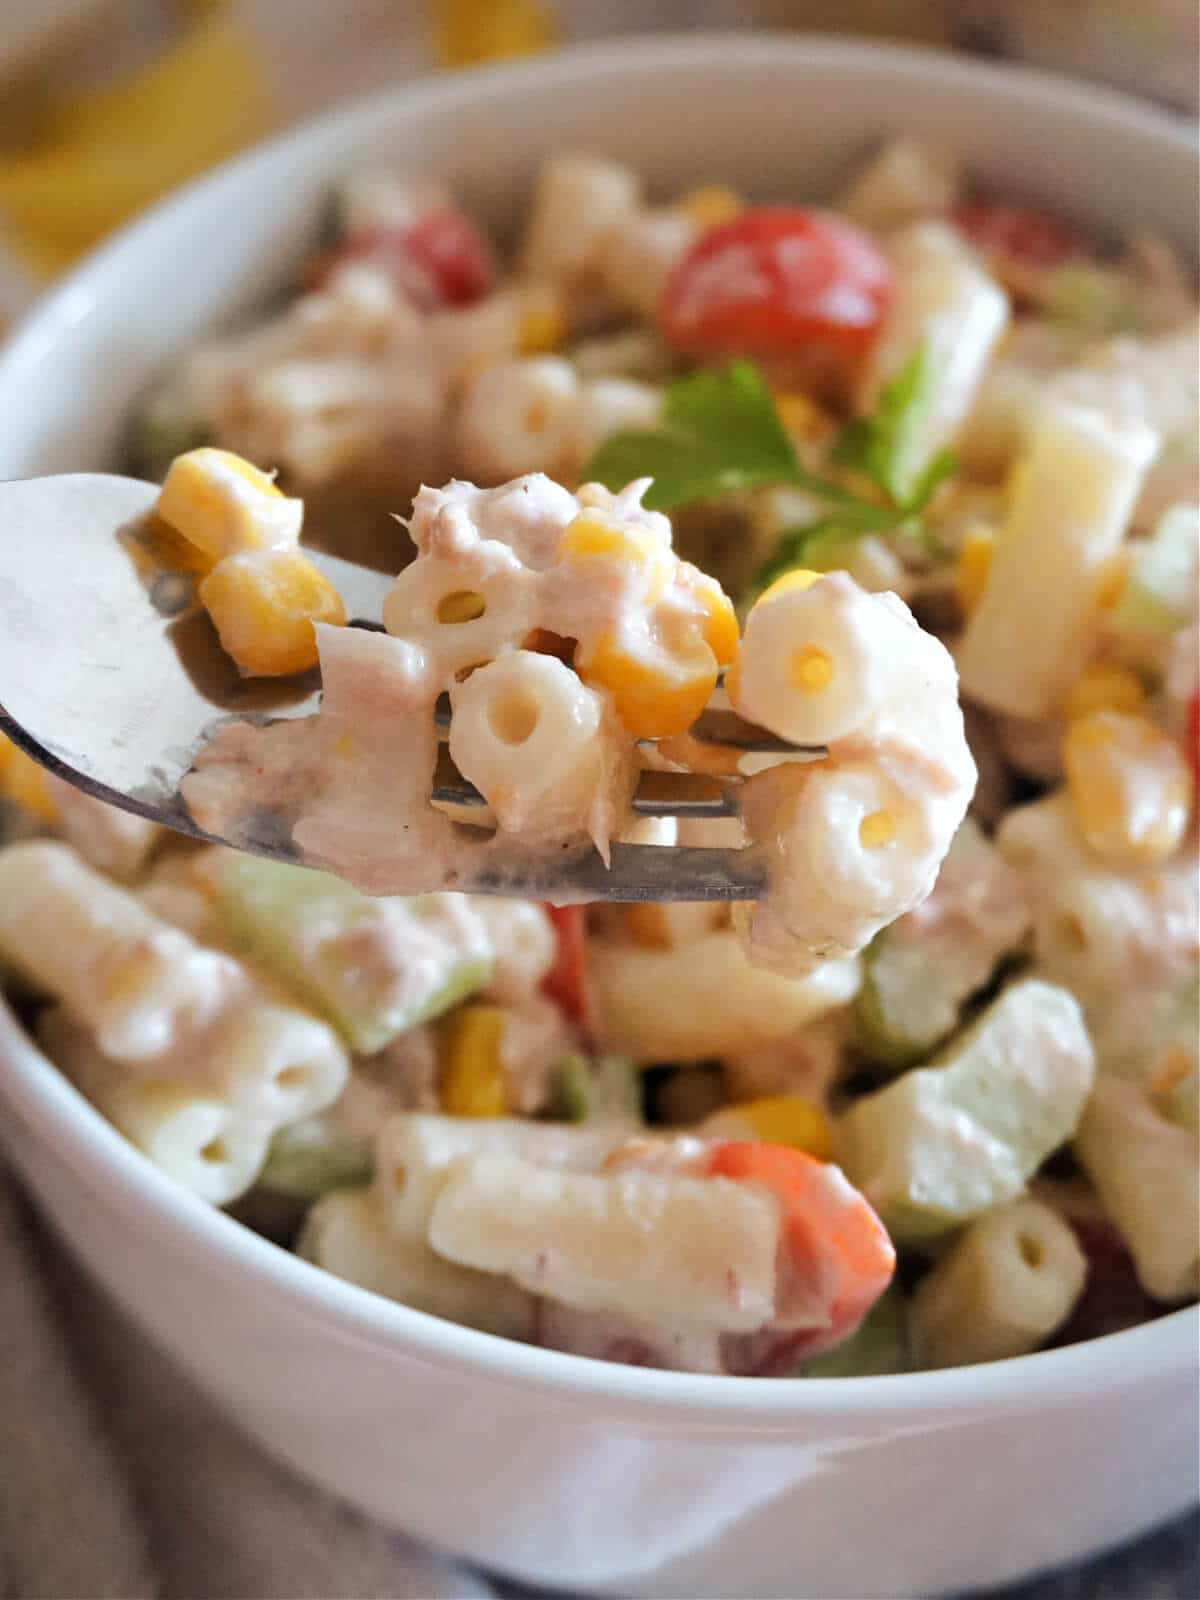 Close-up shot of a white bowl with tuna pasta salad and a fork in it